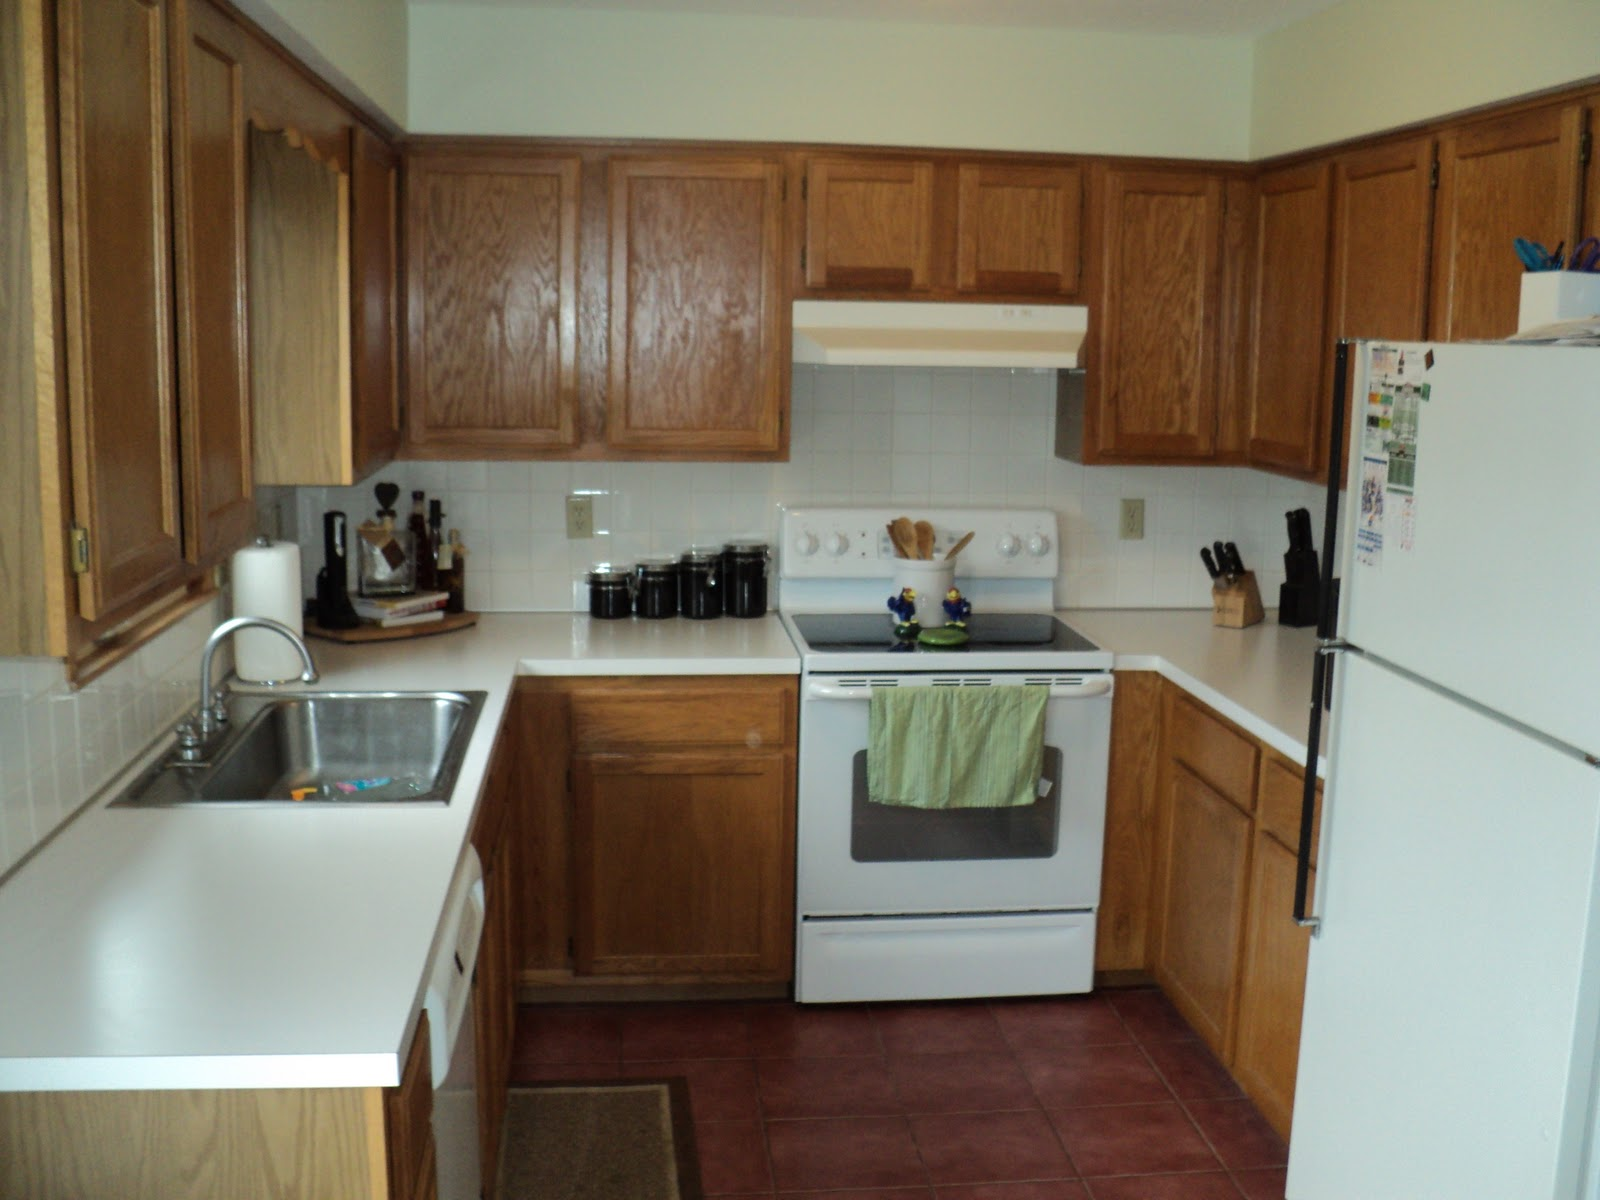 White Kitchen Cabinet Makeover Update Oak Kitchen Cabinets Httpwwwlowescompd 586829 1811 S74bnk